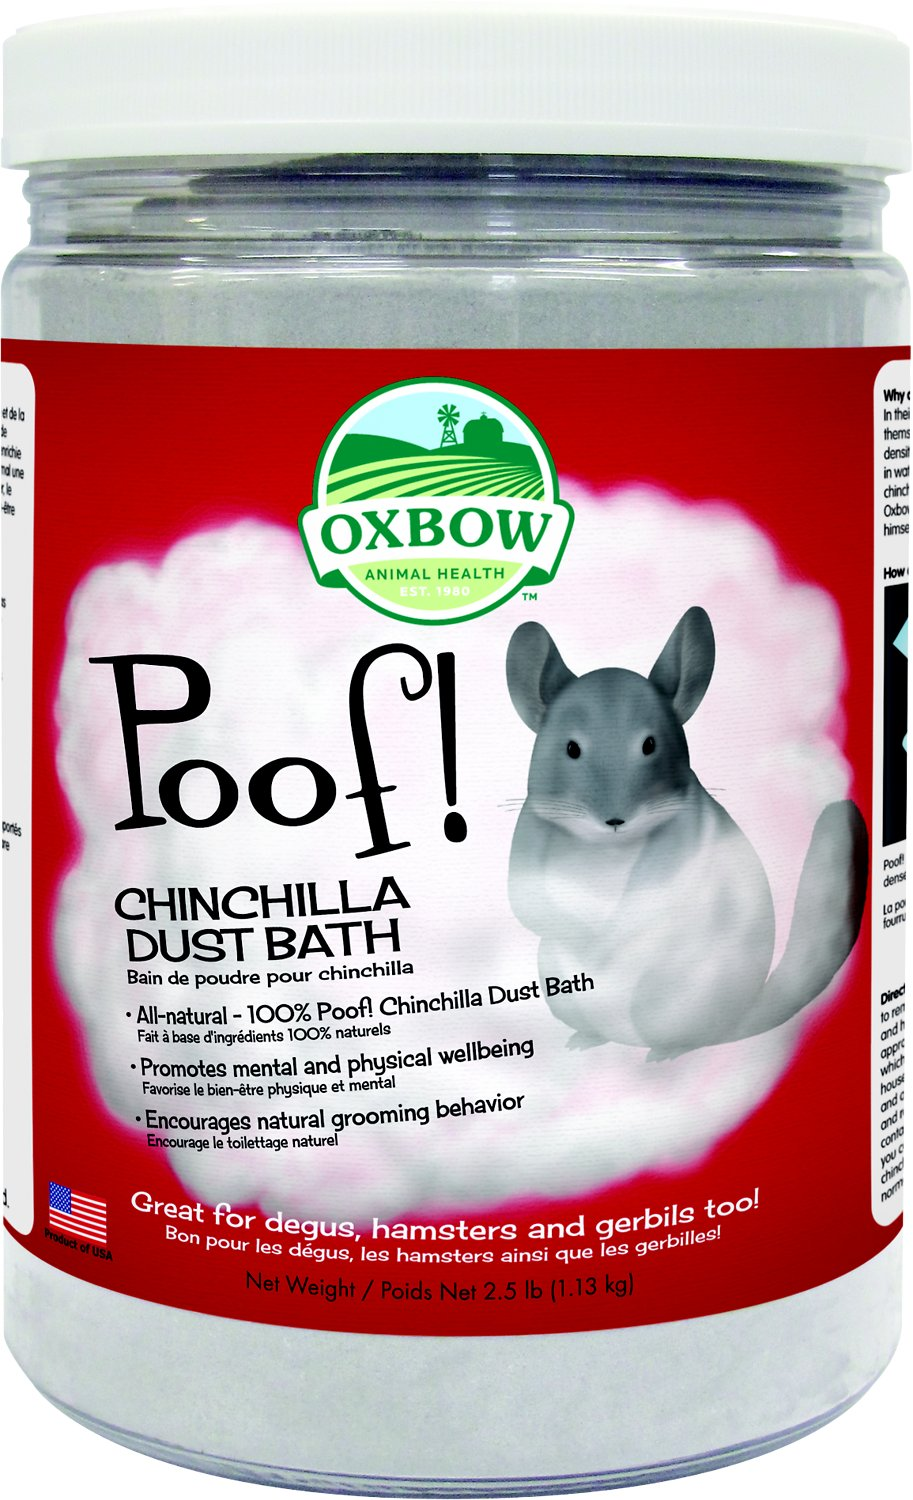 Oxbow Poof! Chinchilla Dust Bath, Blue Cloud, 2.5-lb jar Image